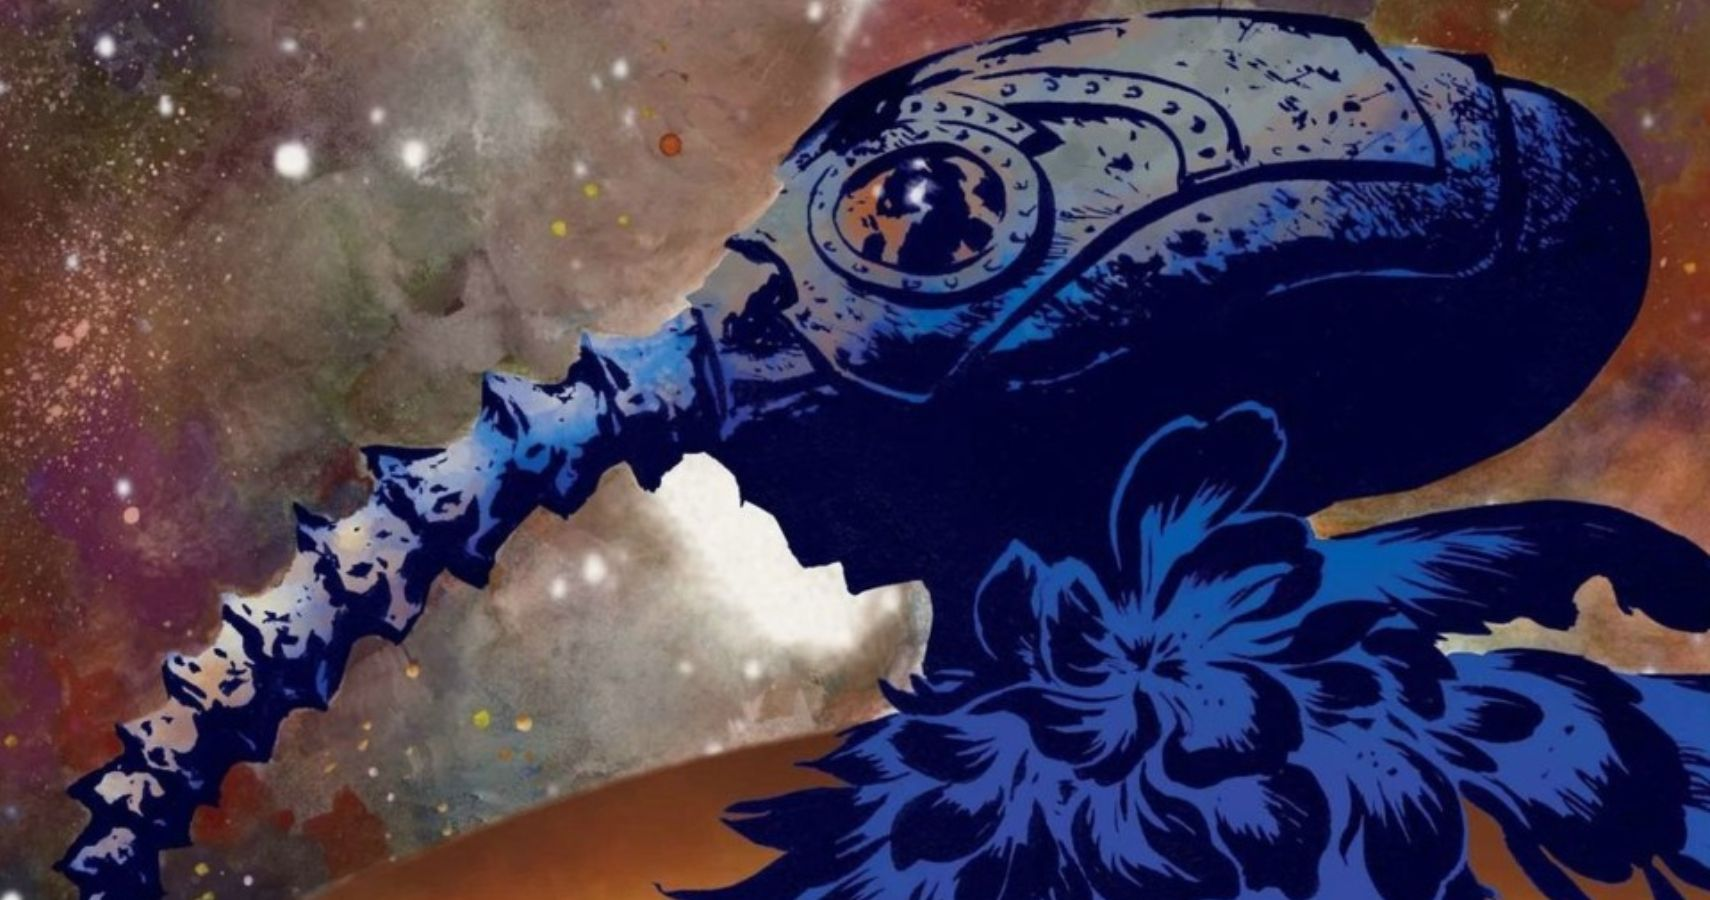 Netflix's Sandman: 5 Reasons Why We're Excited For The Netflix Show (& 5 Why We're Nervous)